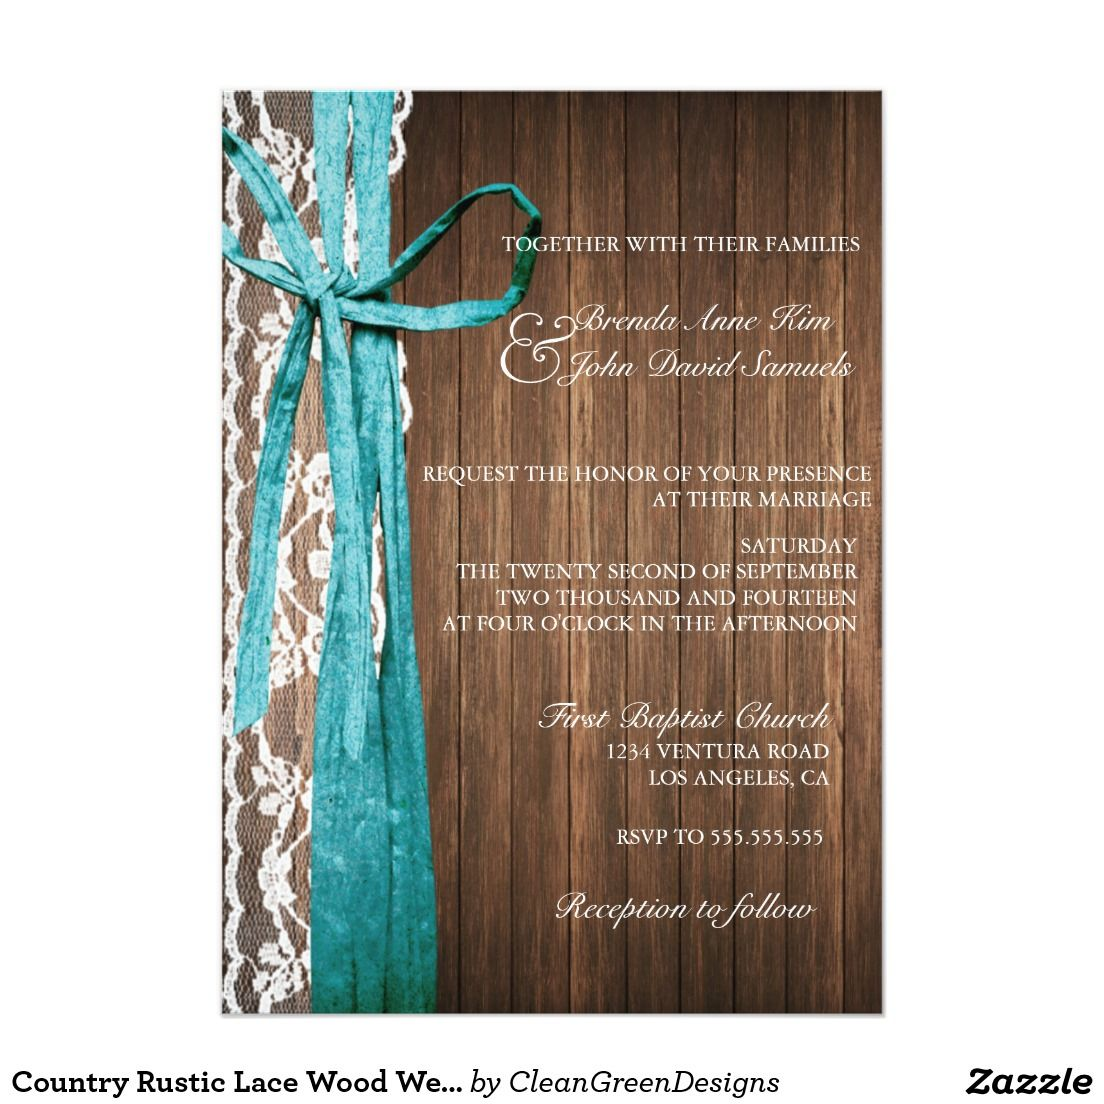 Wood Wedding Invites: Country Rustic Lace Wood Wedding Invitation